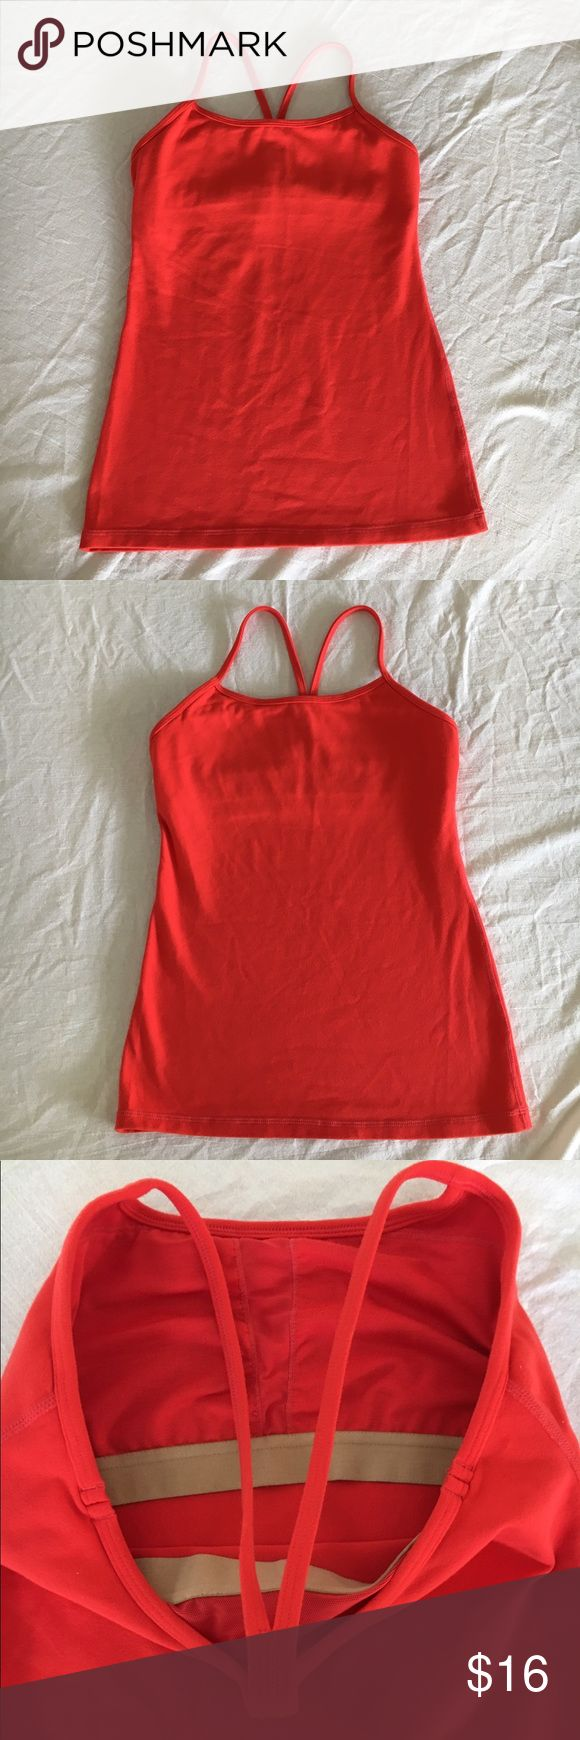 """LULULEMON ORANGE RED CAMI YOGA FITNESS TOP SZ 6 SZ 6 LULULEMON orangey red CAMI top. Pre owned, gently worn and in very good condition. No stains, holes, stretching, rips or odors. Smoke free home and environment. Built in bra. Does not come with inserts. Measurements: armpit to armpit flat side to side: 14"""" length from top of strap to bottom of top. 23"""". Thanks for stopping by! ☮️ Laura lululemon athletica Tops Camisoles"""